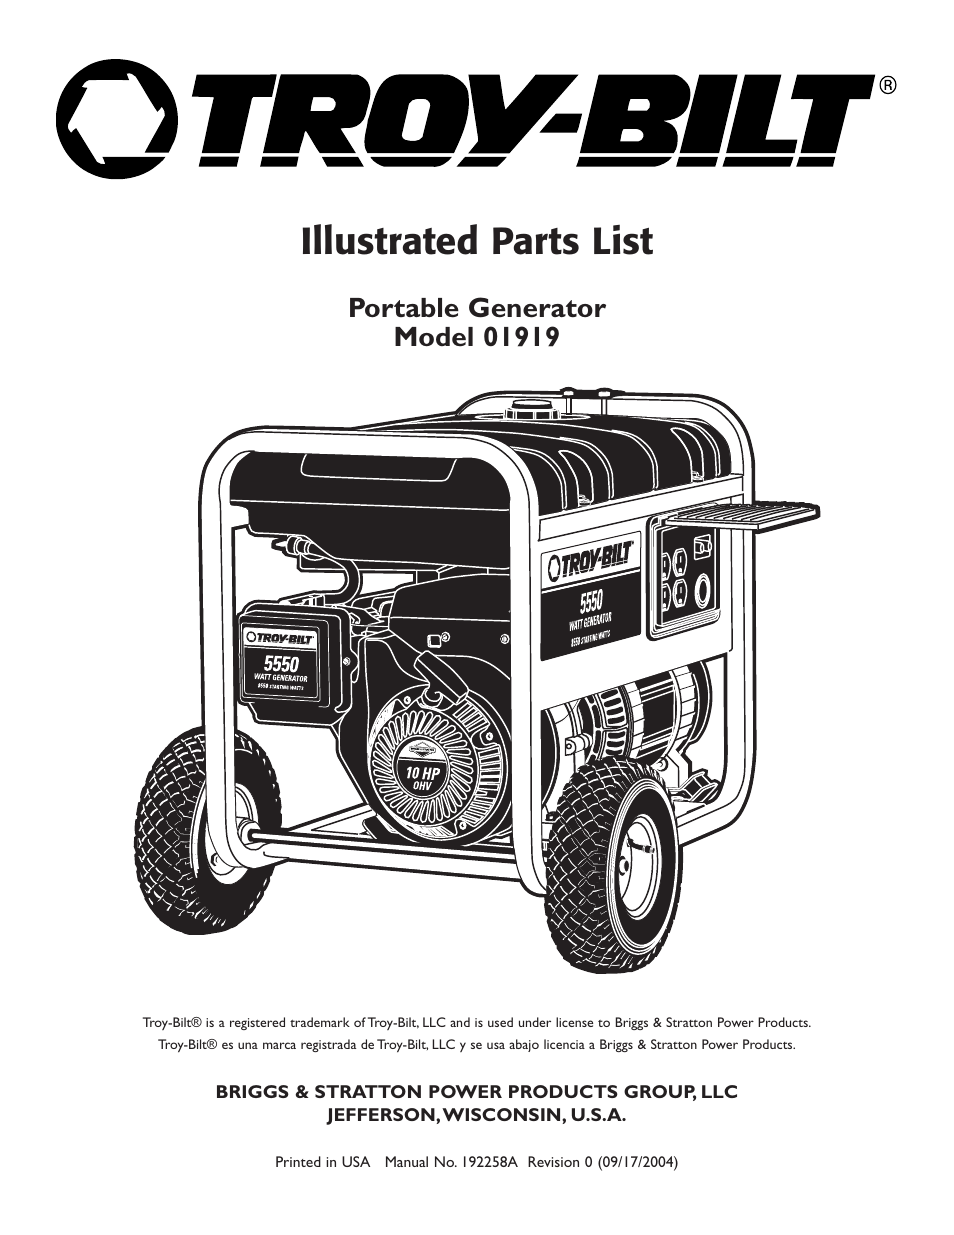 Troy Bilt 5550 Generator Parts Diagram Diy Enthusiasts Wiring 1 And List For Craftsman Generatorparts Model 01919 User Manual 6 Pages Rh Manualsdir Com Snow Blower 5500